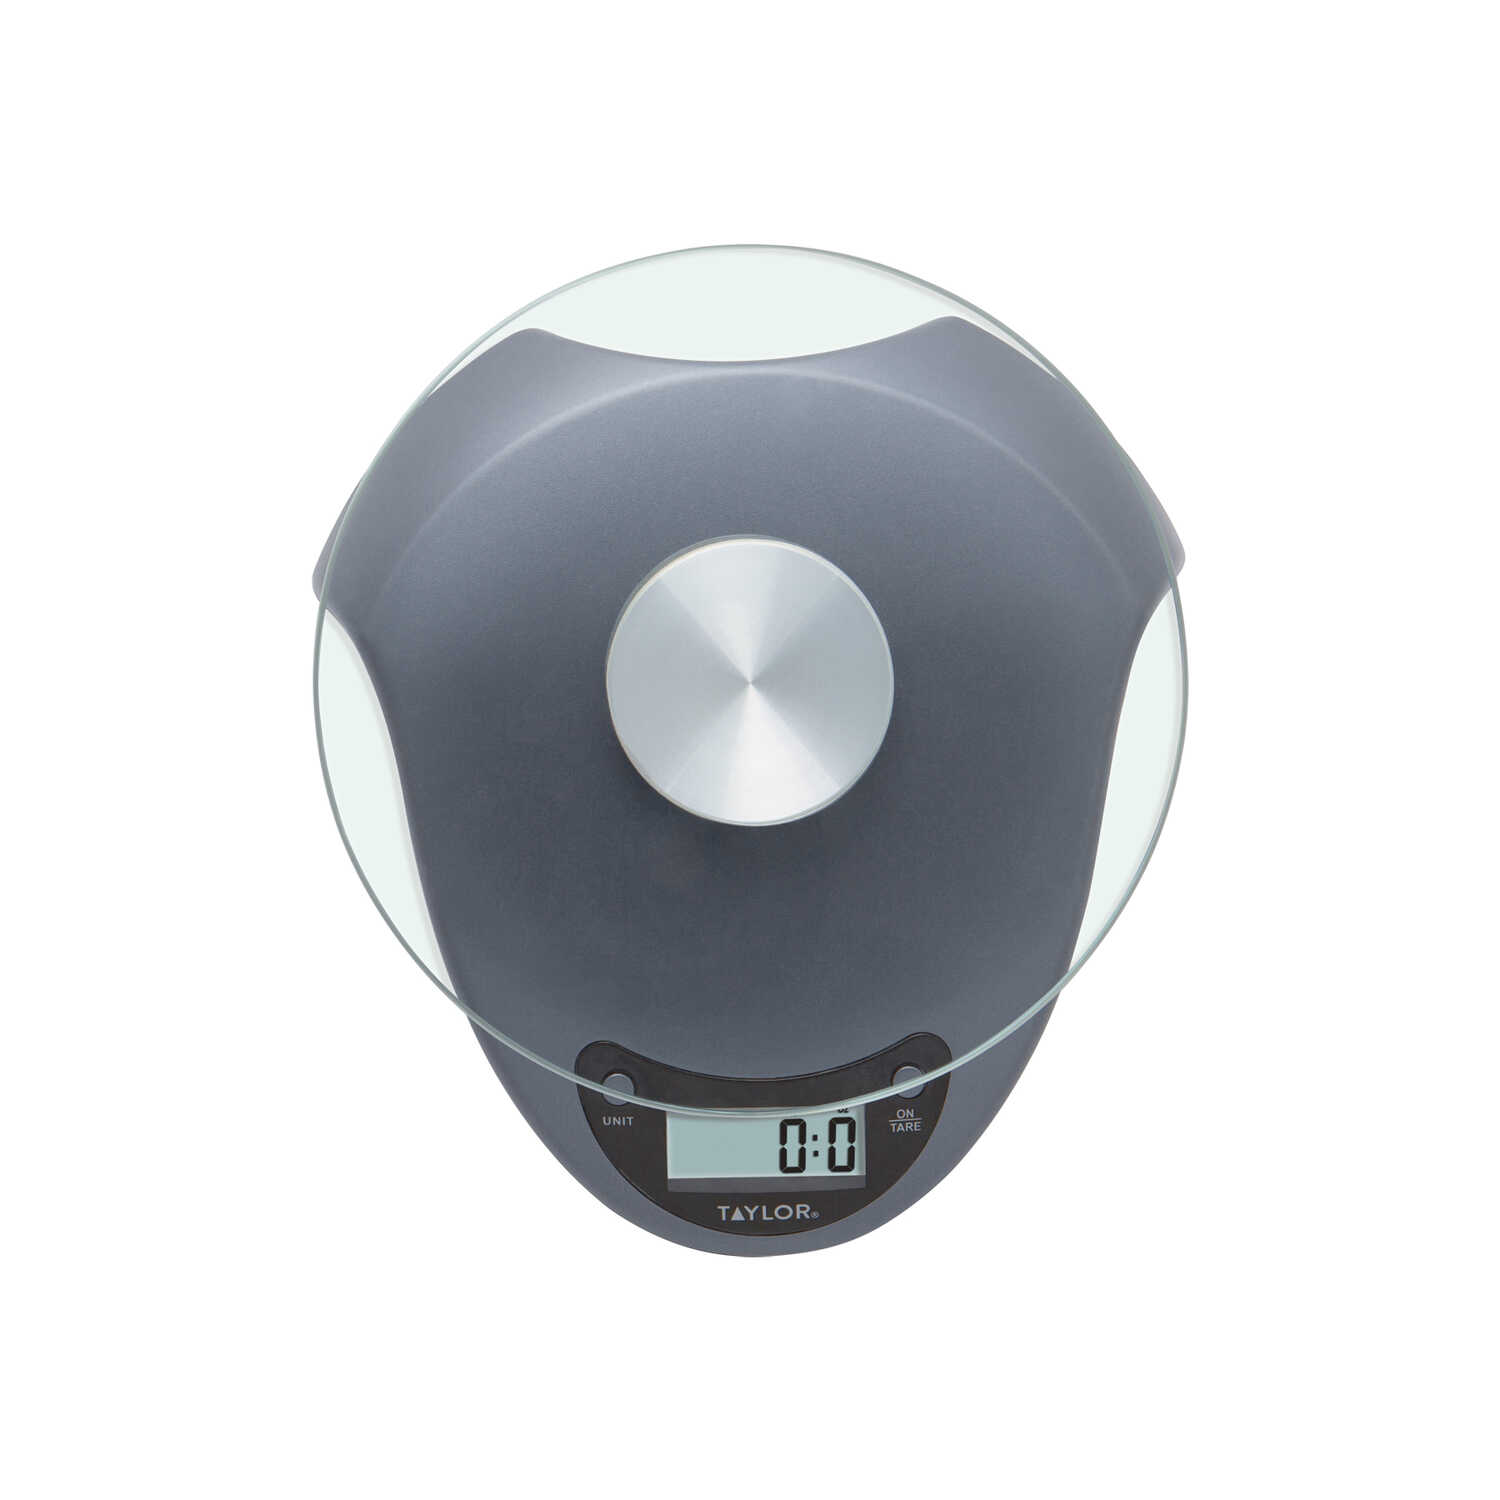 Taylor  Silver  Digital  Food Scale  6.6 lb.